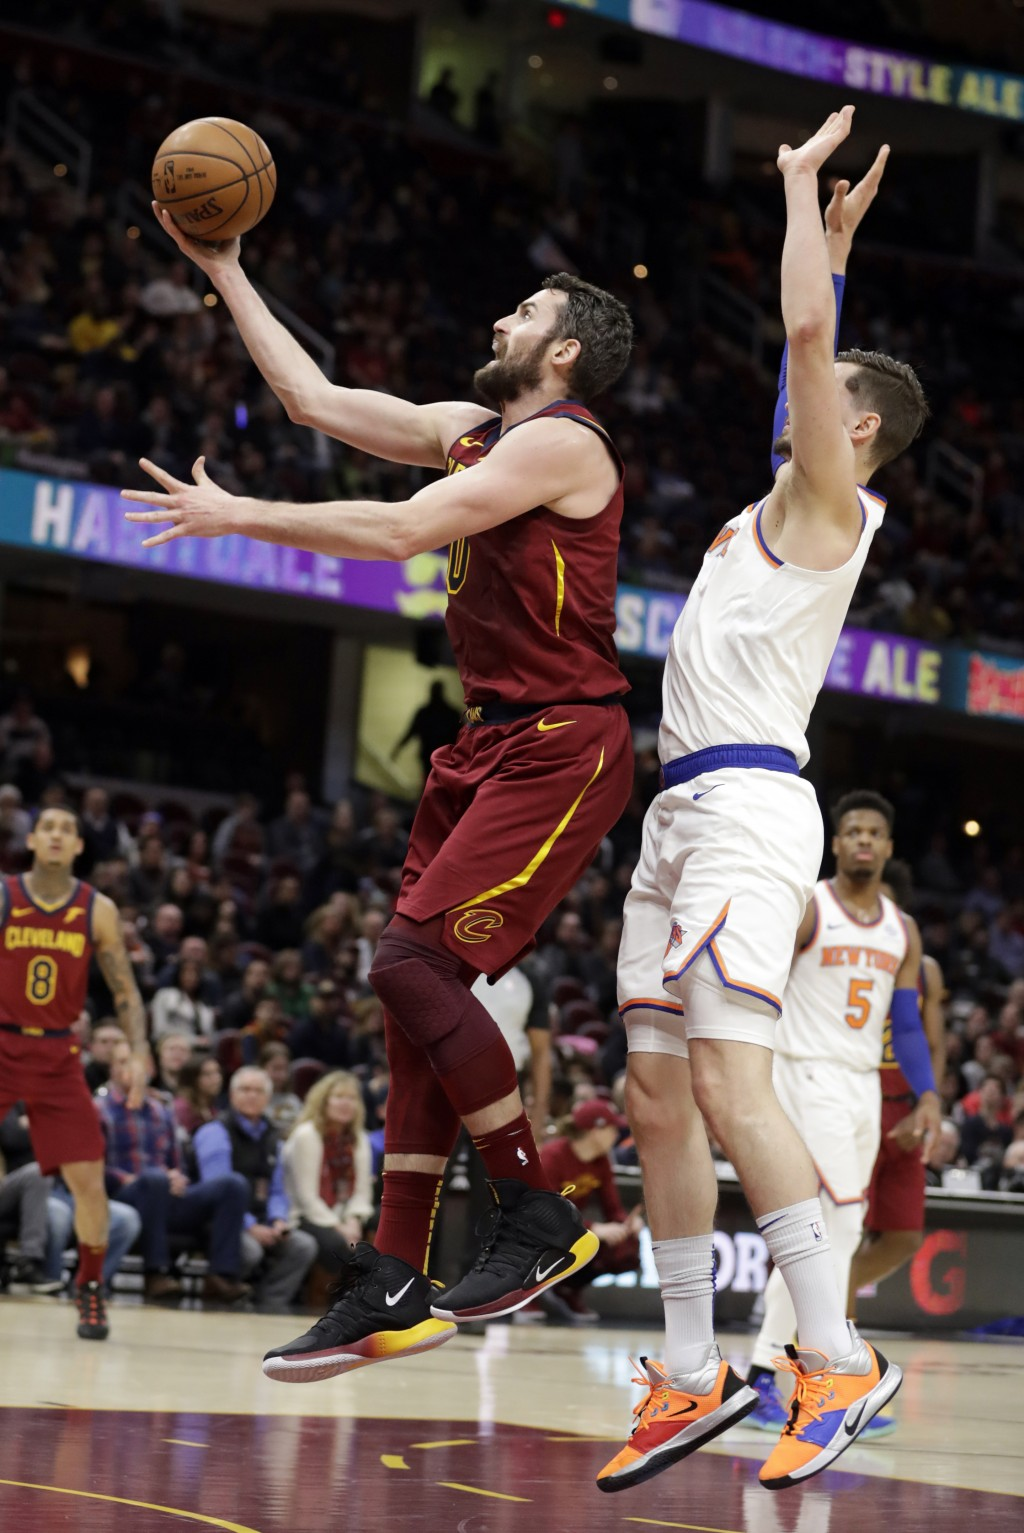 Cleveland Cavaliers' Kevin Love, left, drives to the basket against New York Knicks' Mario Hezonja, from Croatia, in the first half of an NBA basketba